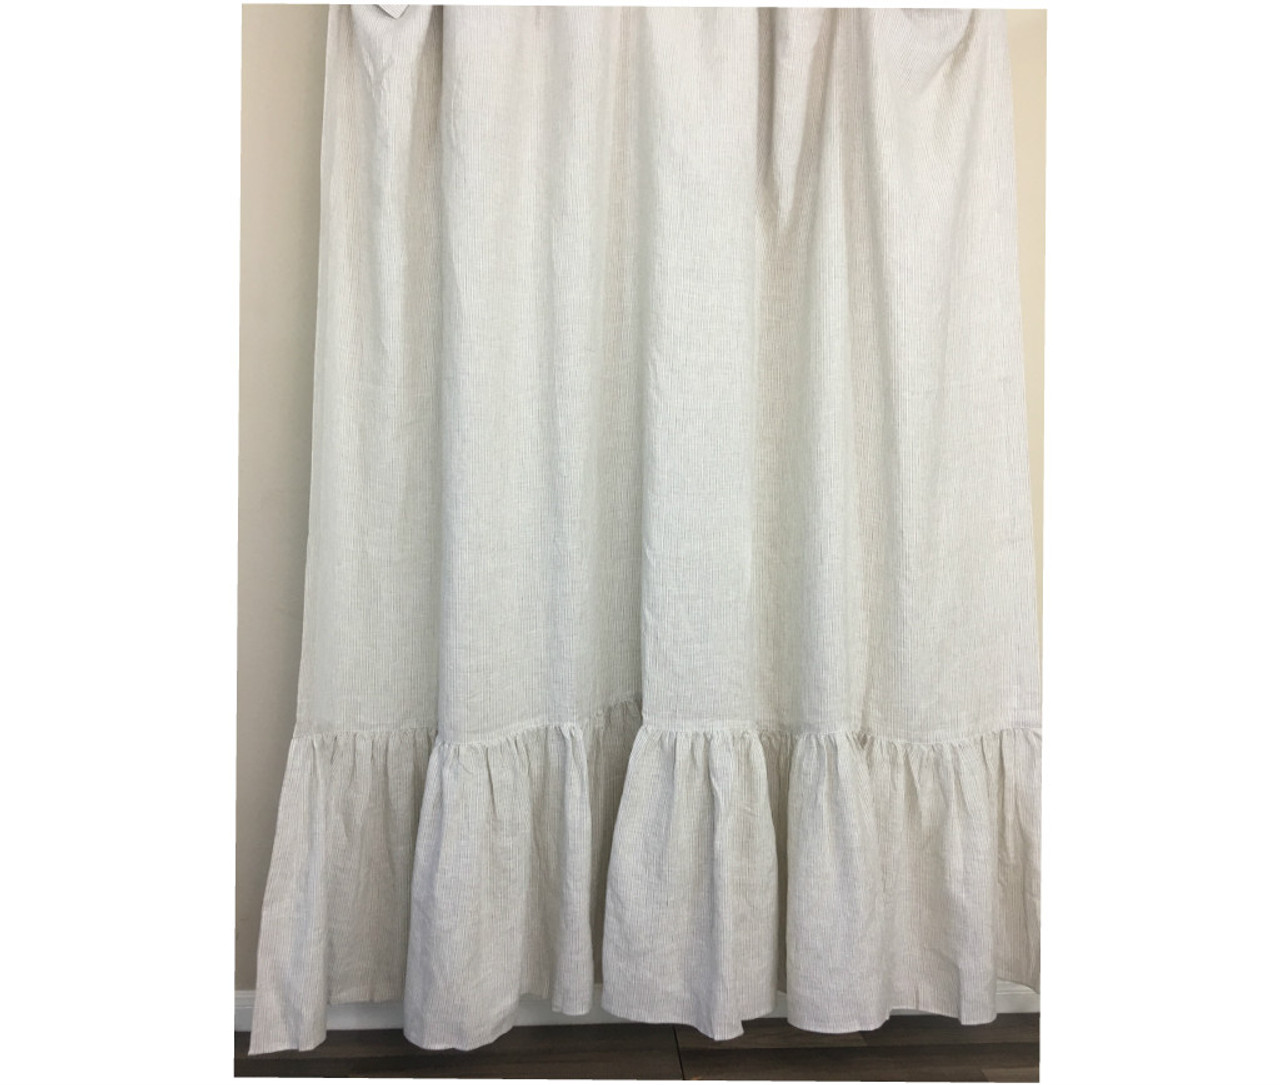 Linen Ticking Striped Shower Curtain With Mermaid Long Ruffles